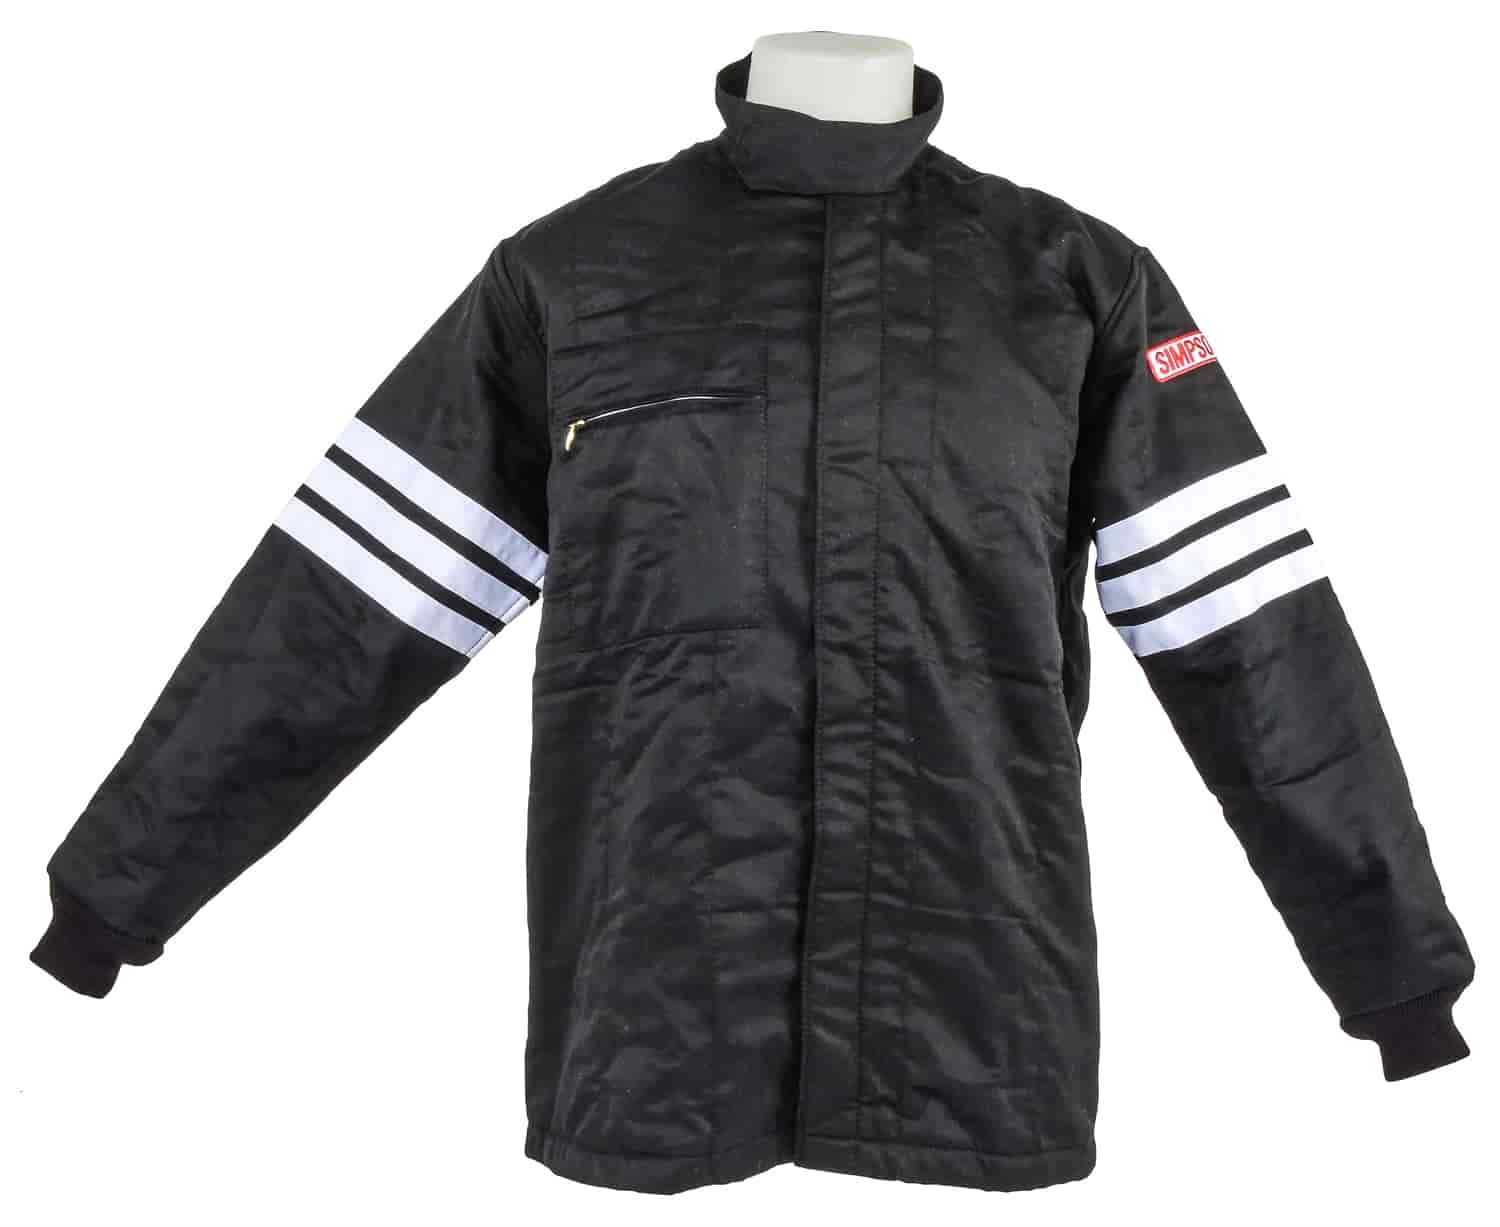 Simpson 0302312 - Simpson Classic 3-Stripe SFI-1 Driving Jackets, Pants and Suits